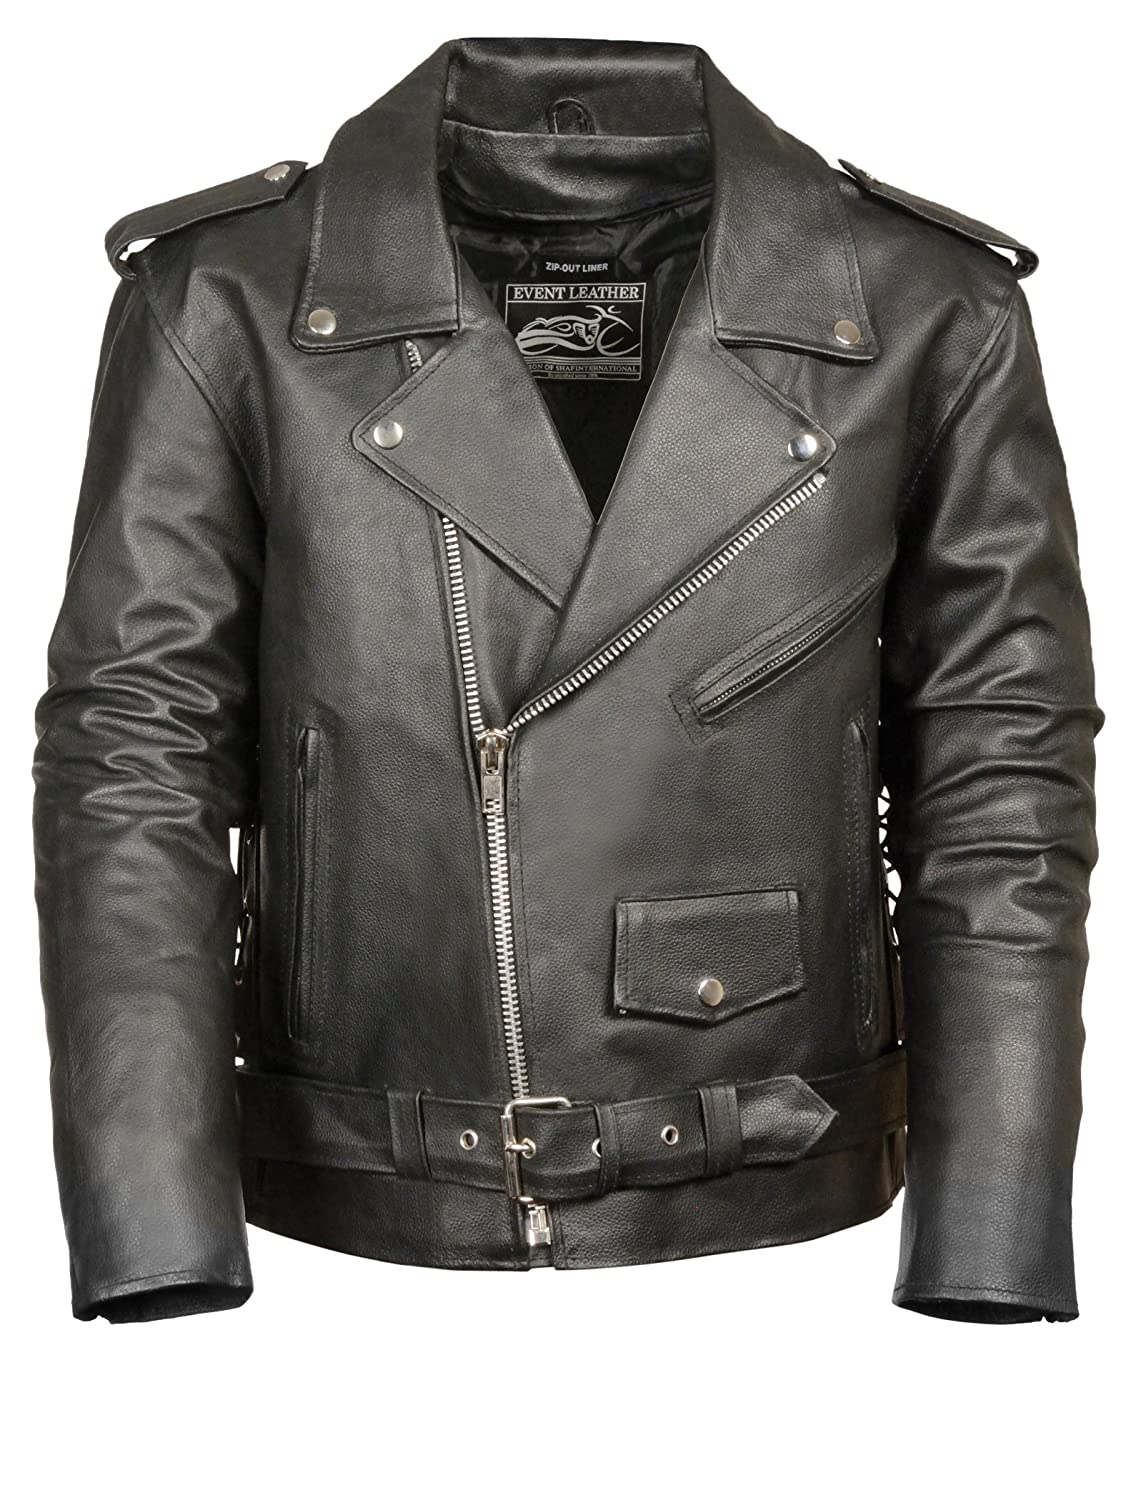 Event Biker Leather Men's Basic Motorcycle Jacket with Pockets (Black, Medium) Shaf International Inc. EL5411-BLK-MD